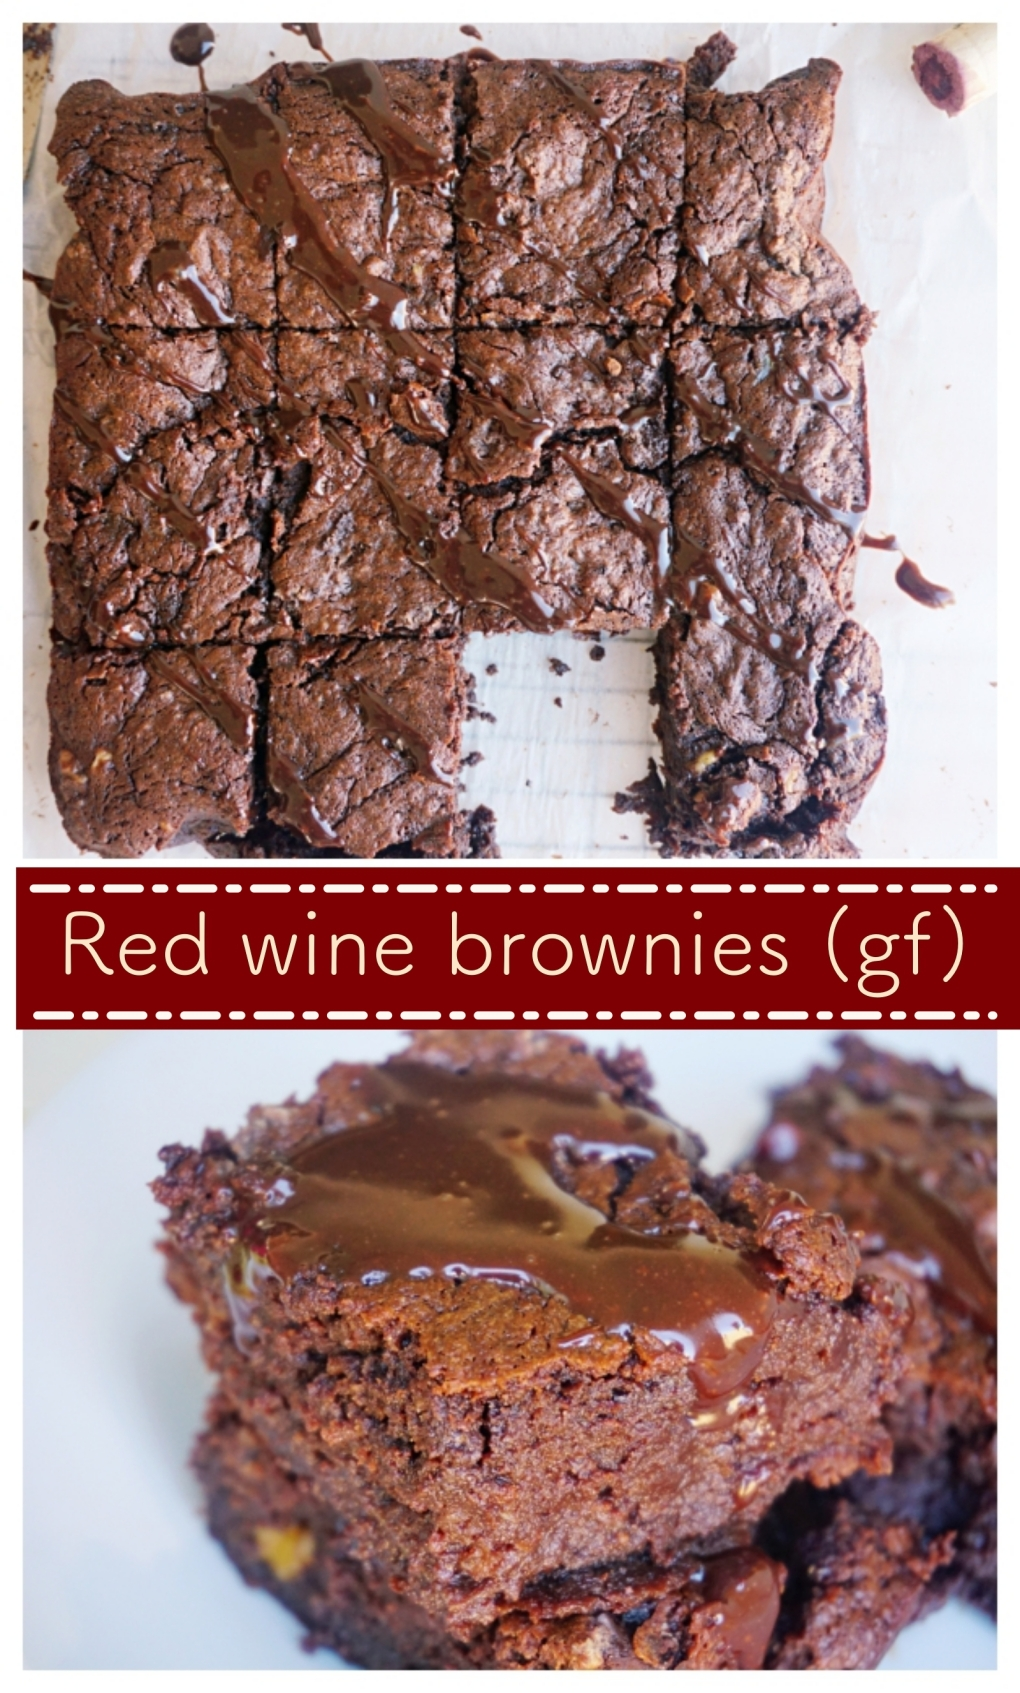 Chocolate red wine brownies (gluten free) | My gf home bakery